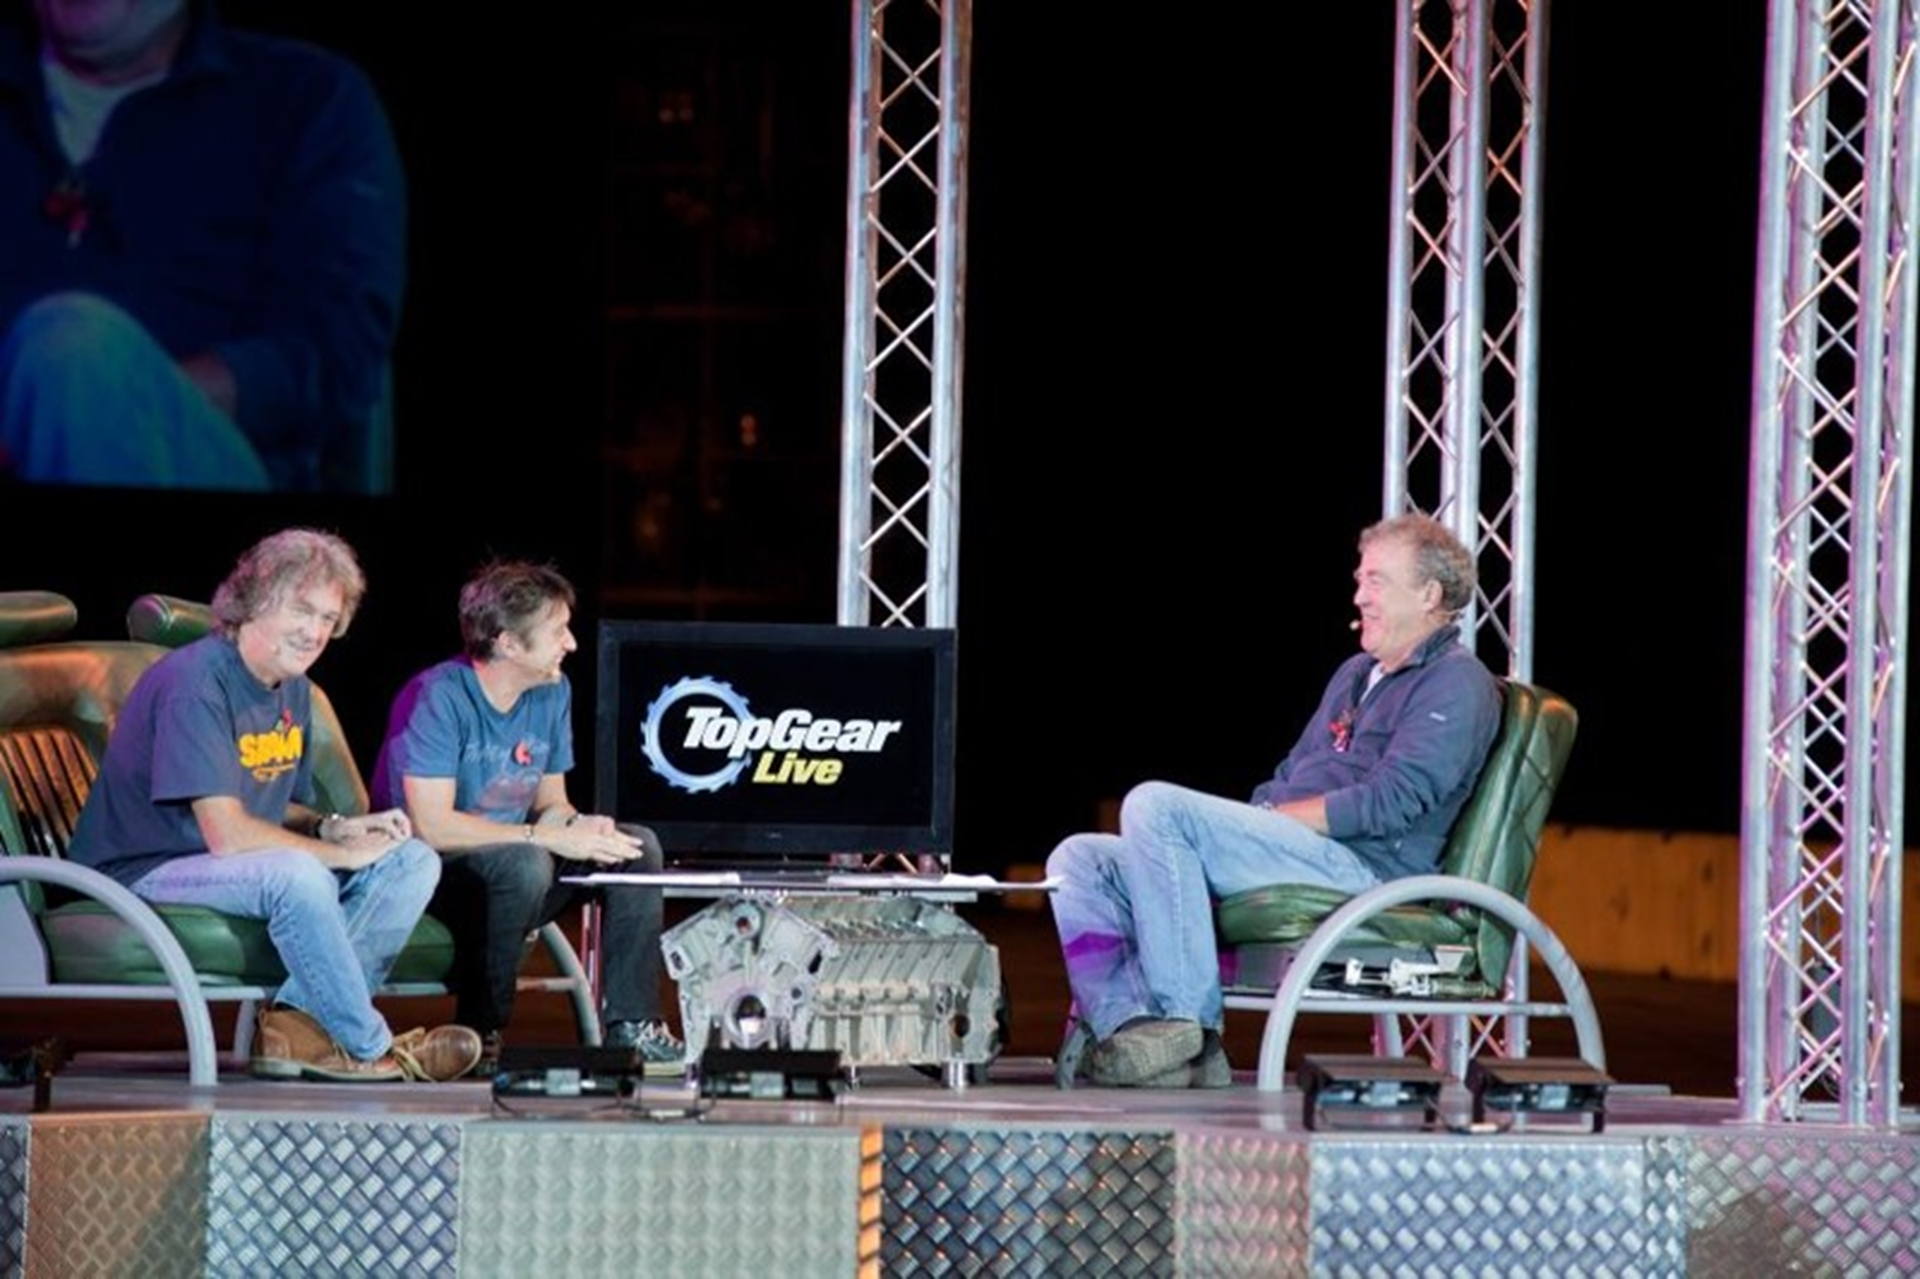 Top Gear Live 2011